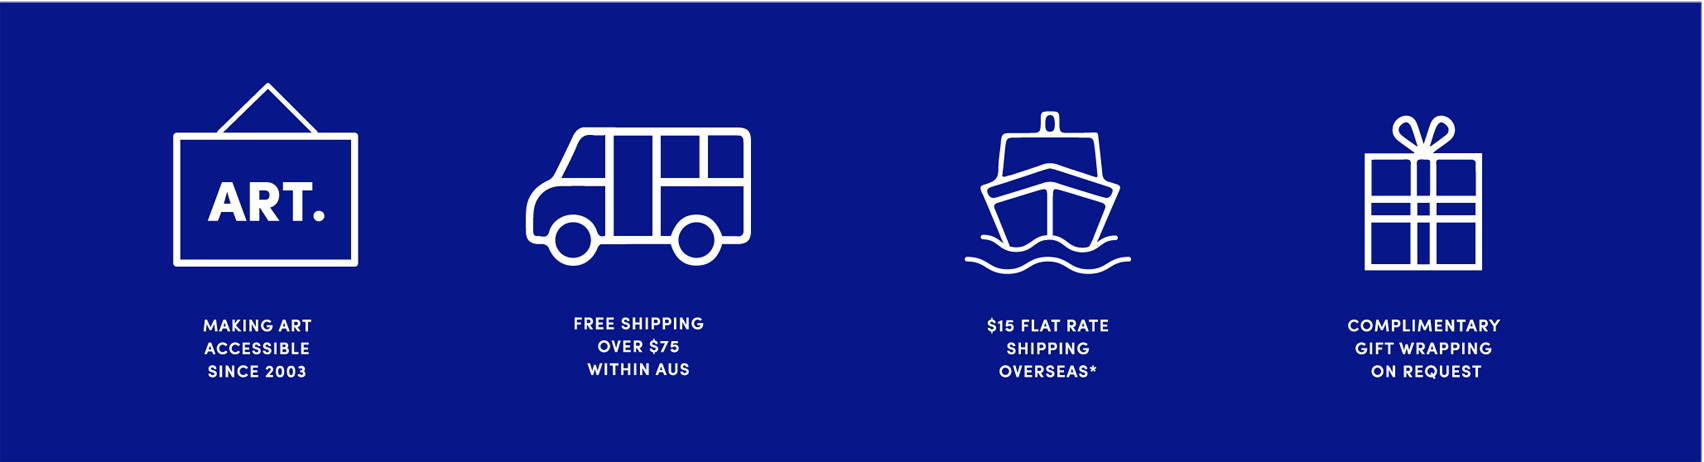 Flat Rate Shipping